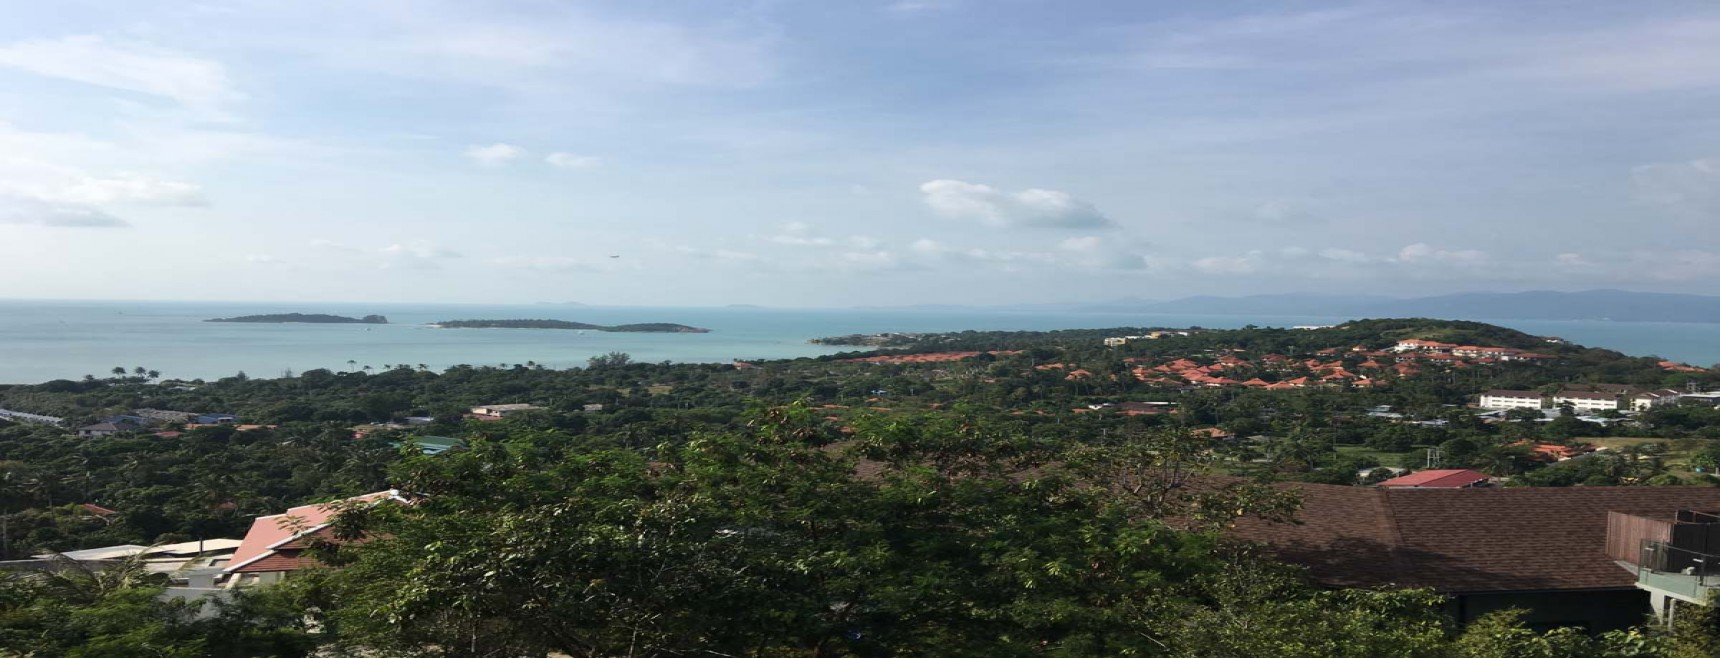 Sea View Land Plot For An Exclusive Villa by Thai-Real.com